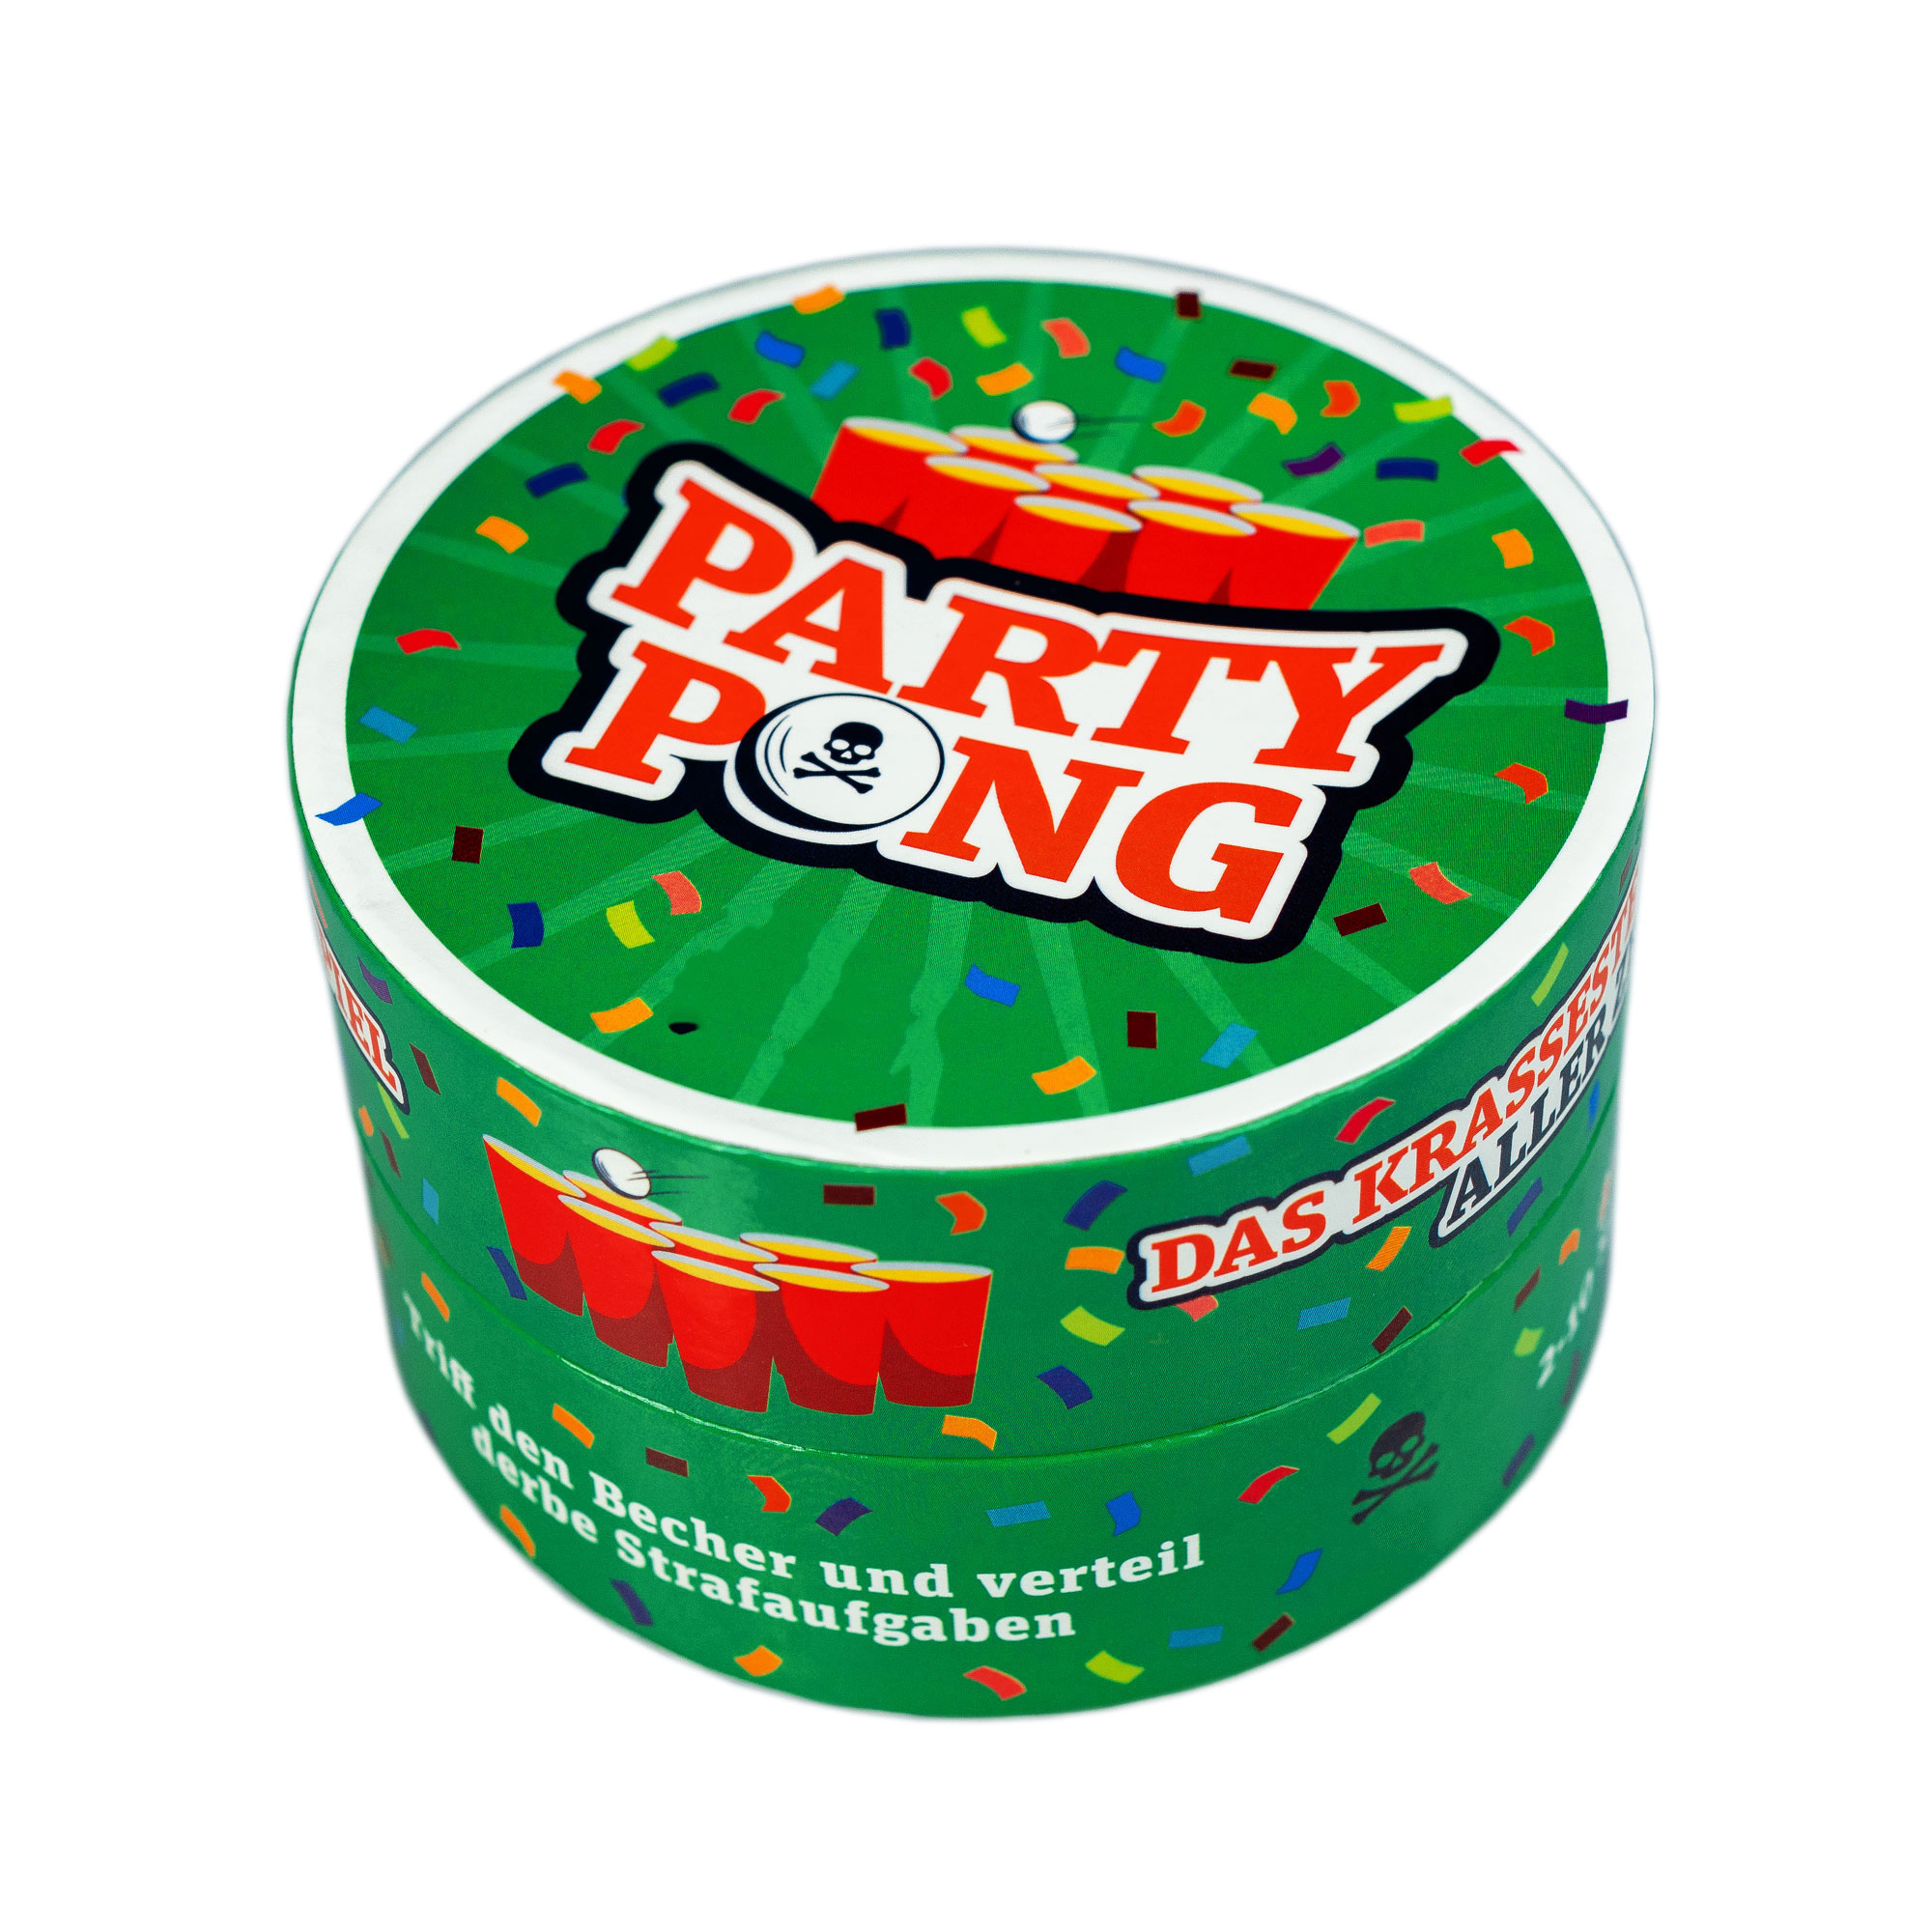 Partypong - Partygame